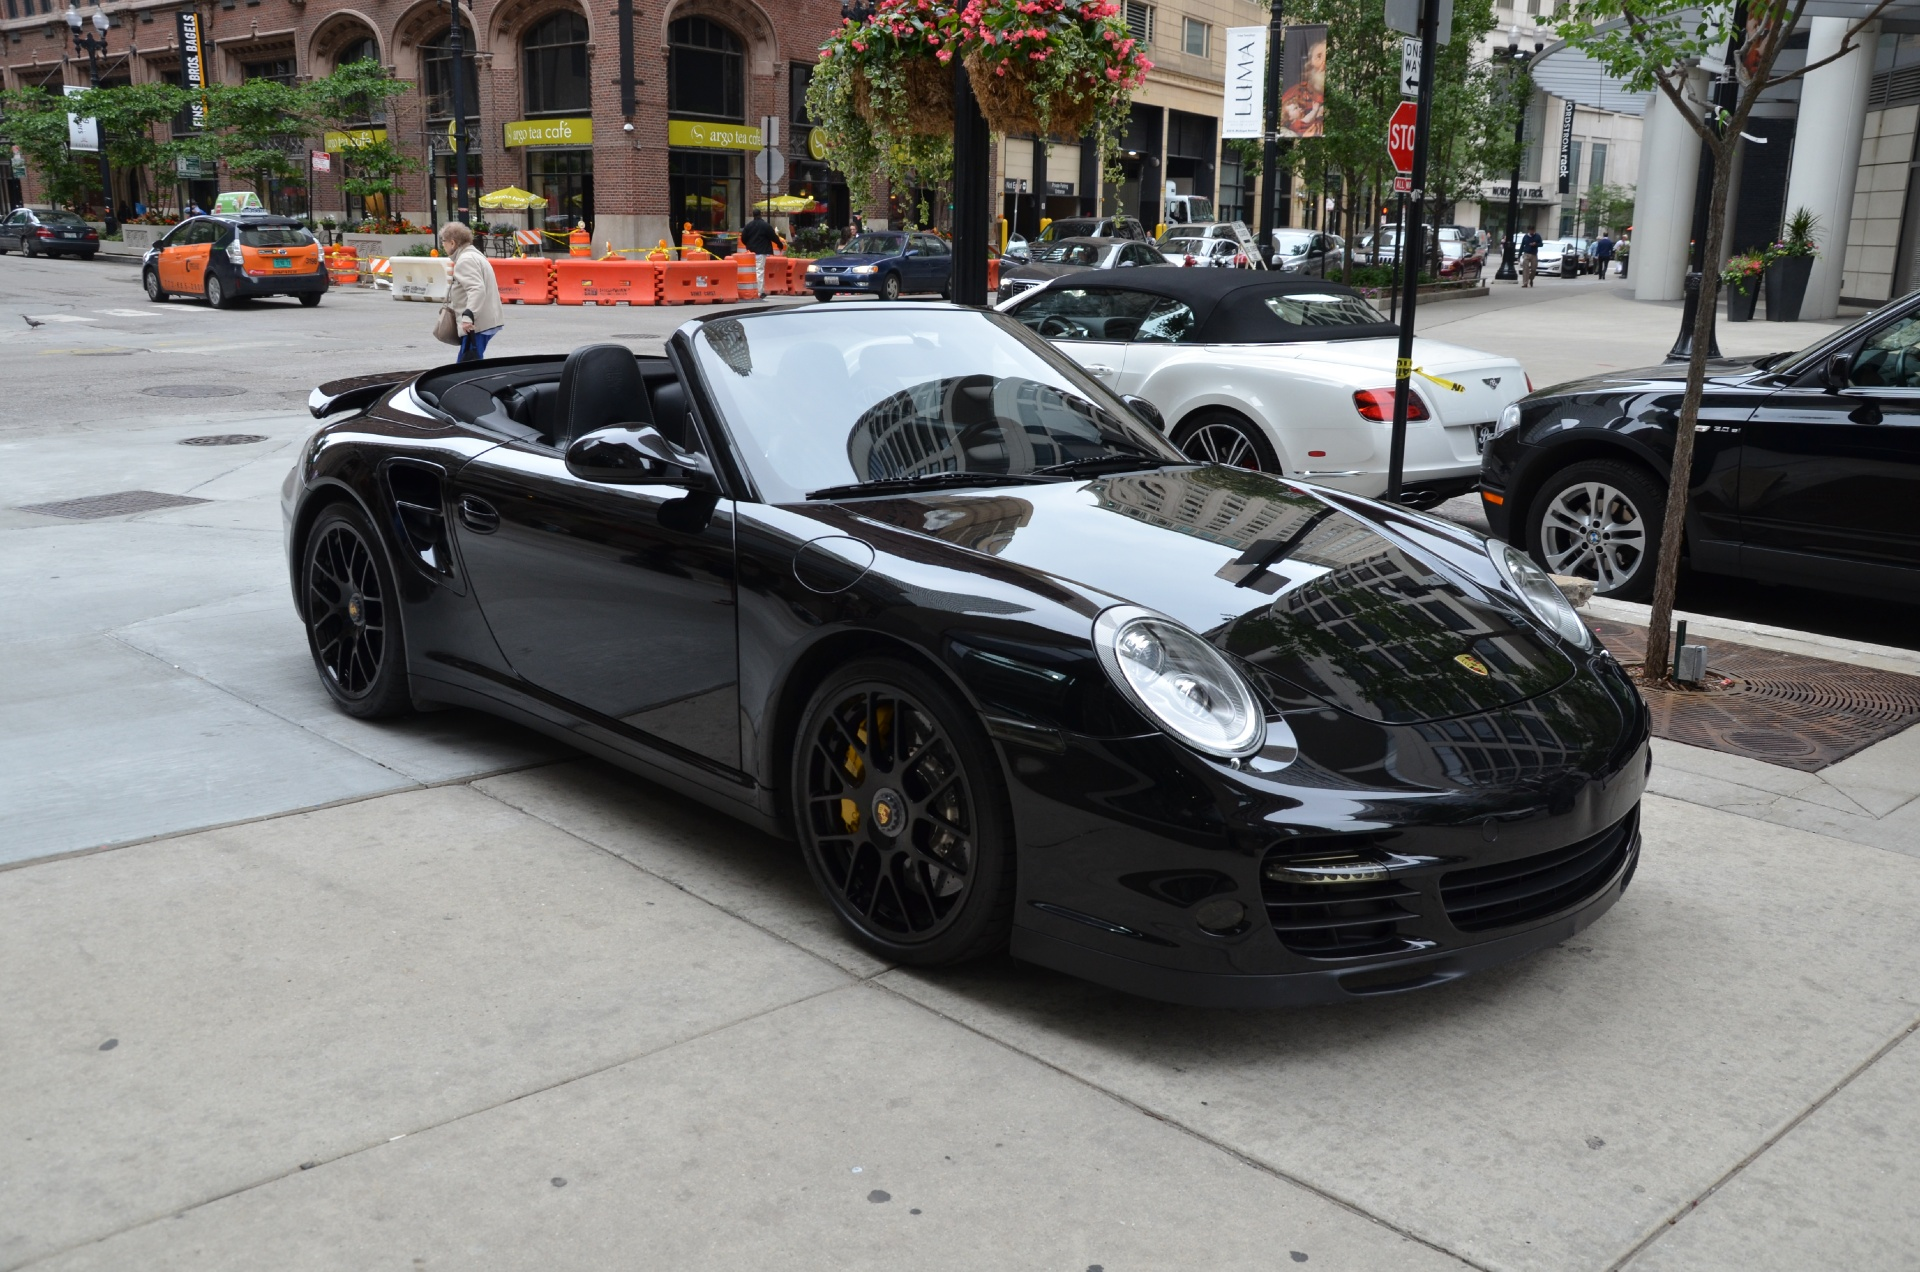 2011 porsche 911 turbo s stock b710a for sale near chicago il il porsche dealer. Black Bedroom Furniture Sets. Home Design Ideas